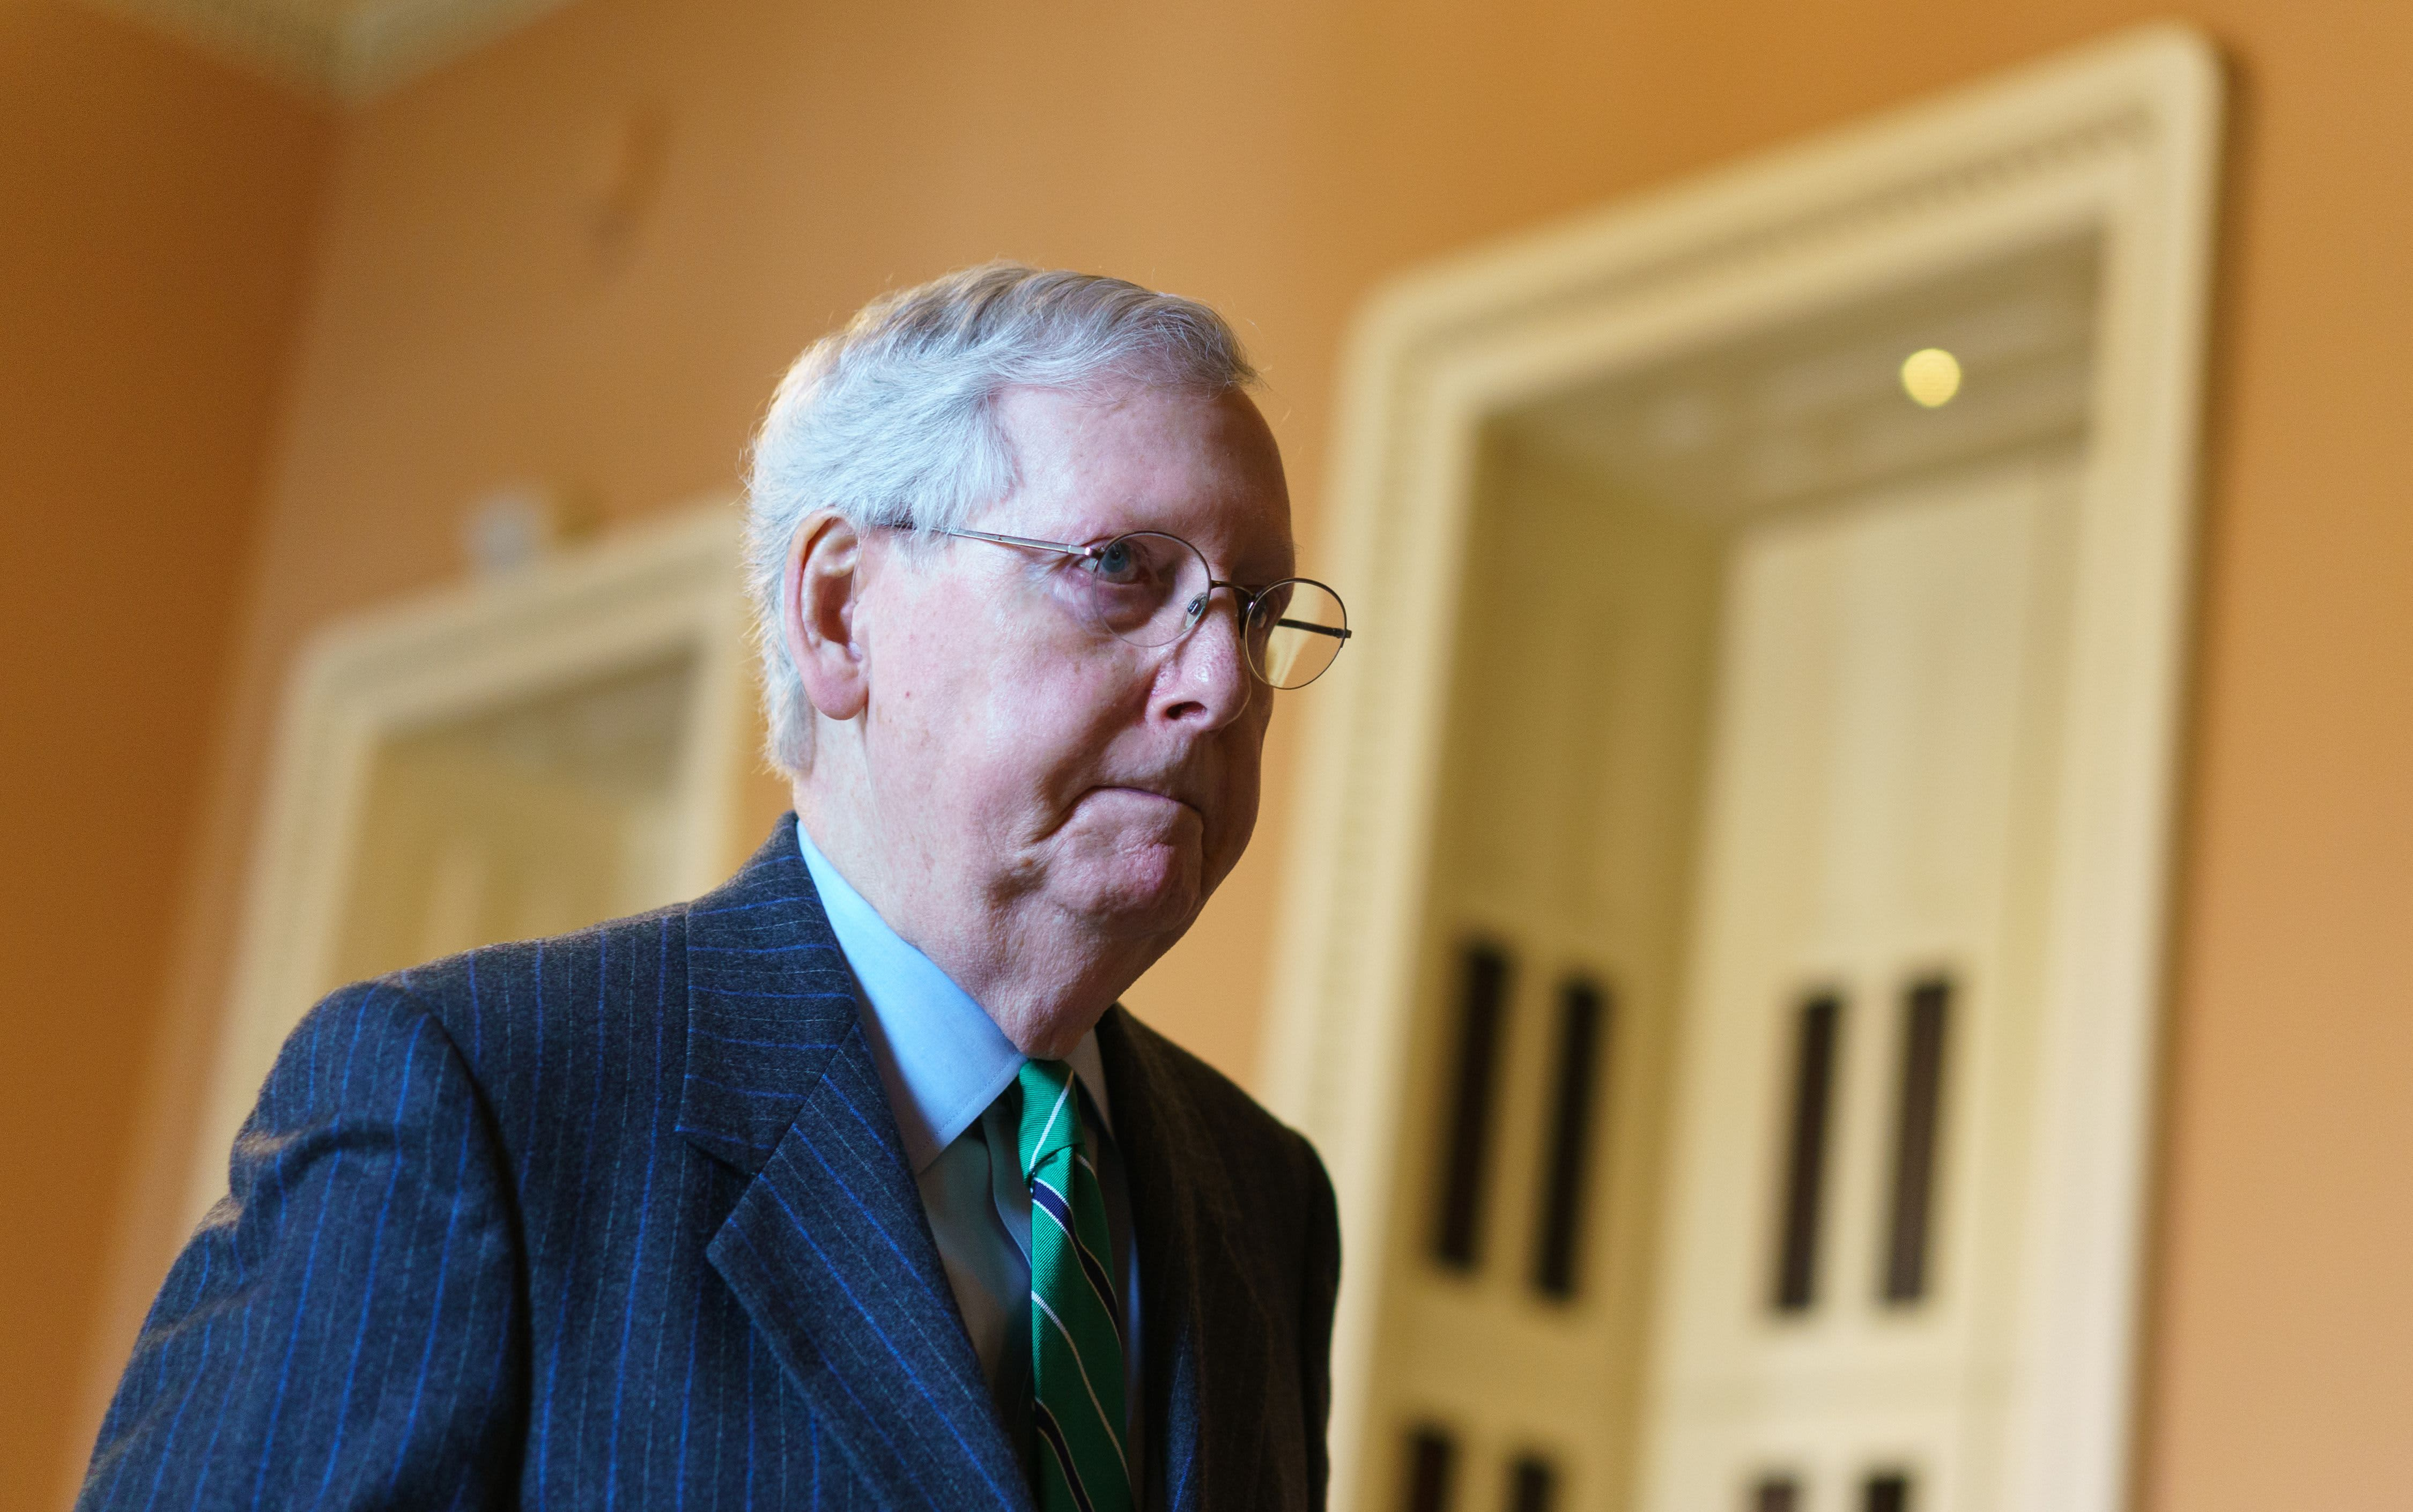 Coronavirus stimulus: Mitch McConnell says relief bill will be final one